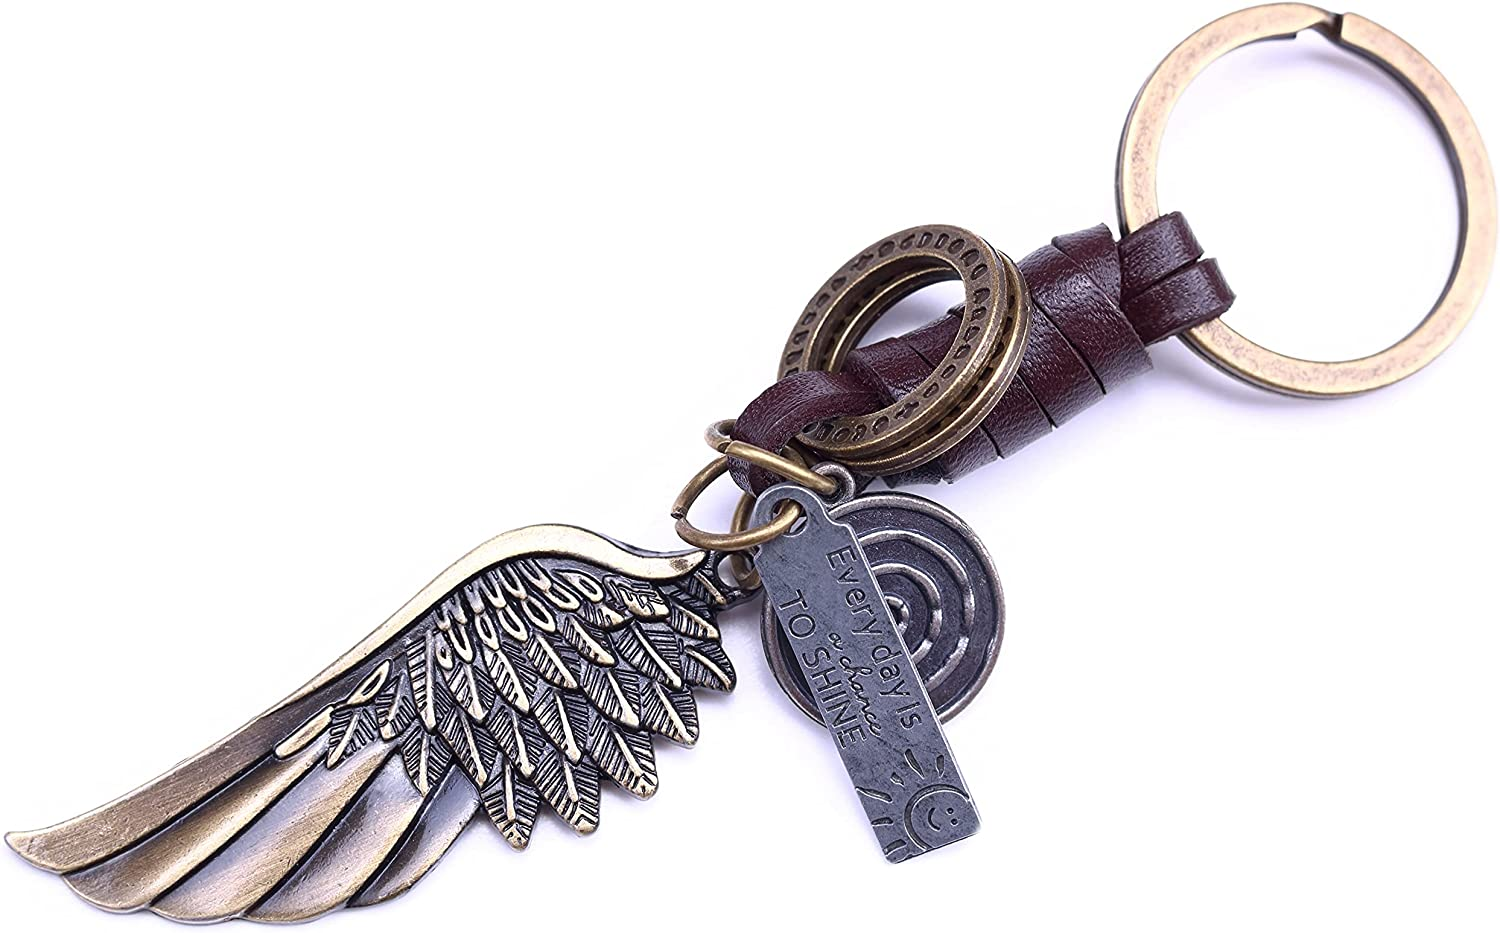 AuPra Guardian Angel Wing Leather KeyChain Best Friend Gift Idea Women Men House Safe KeyRings Girl Boy Friendship Extra Small Present Home Car Key Chain Ring